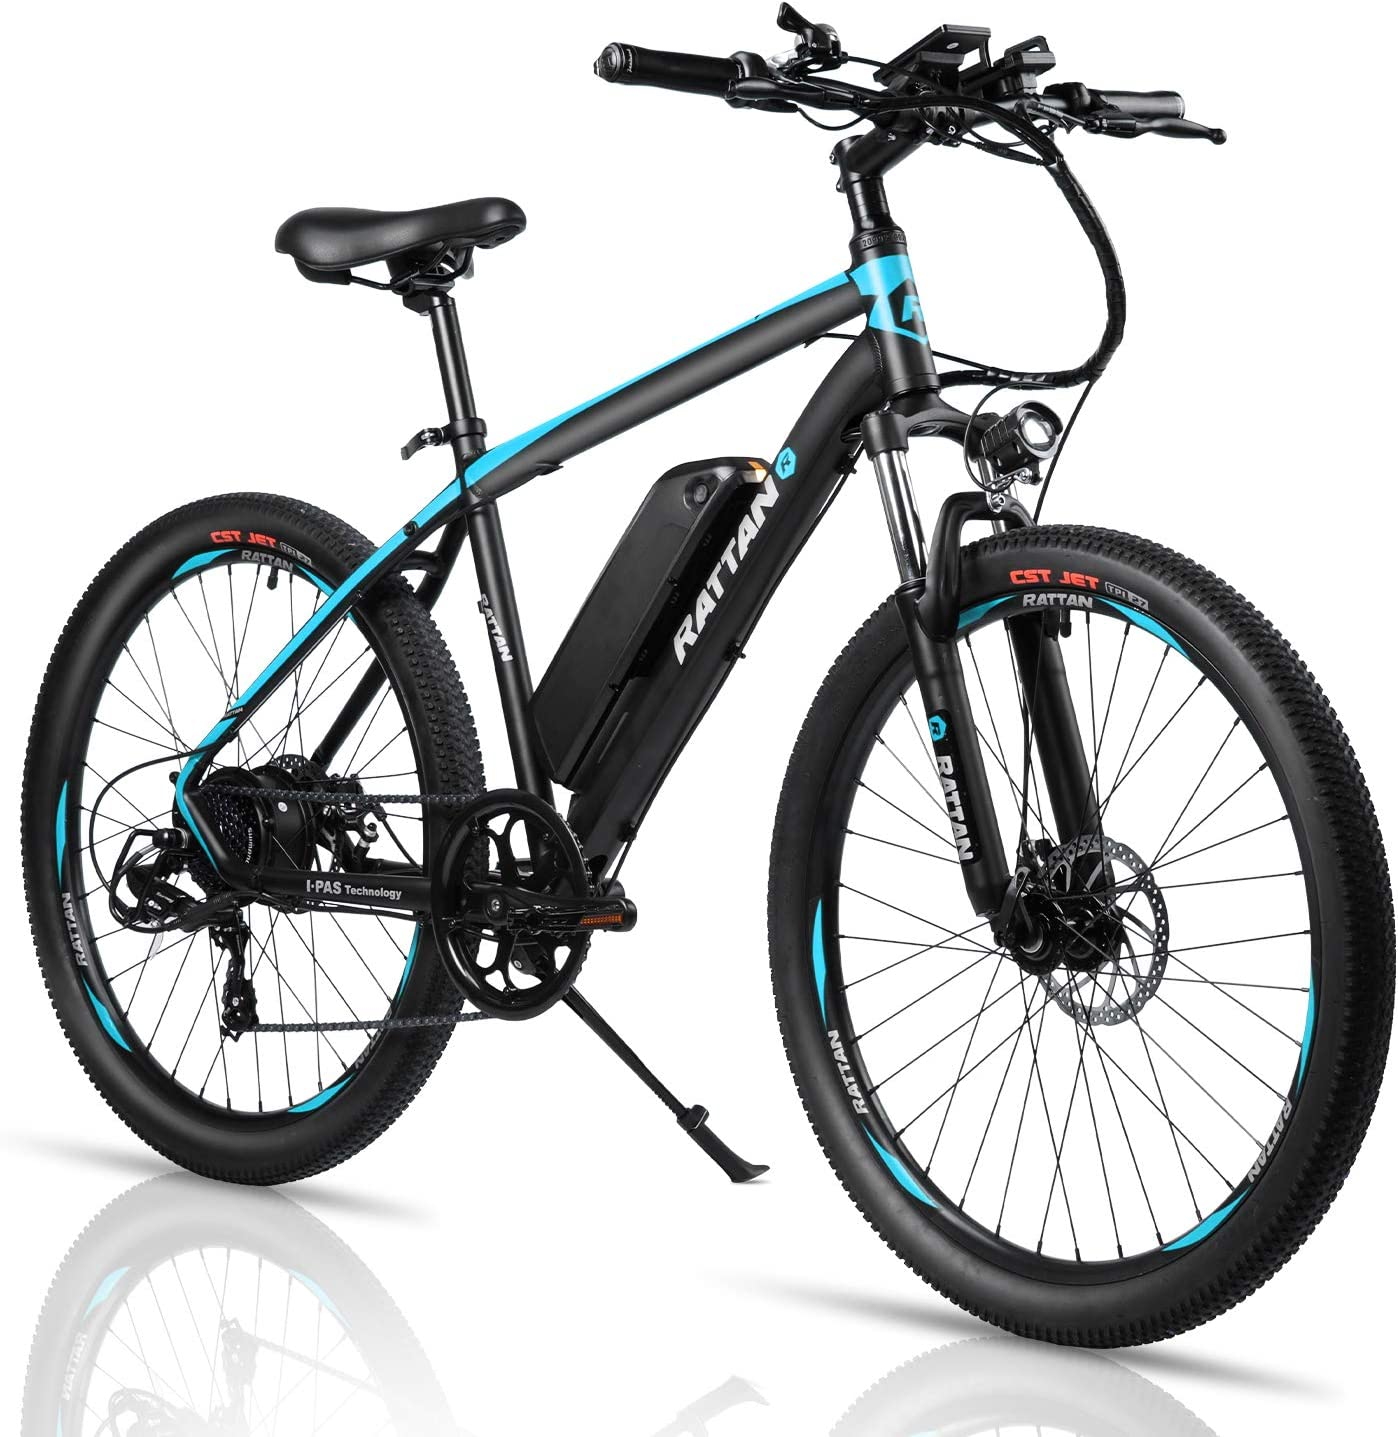 Rattan 26 inch Electric Mountain Bicycle 7 Speed E-Bike 36V 10.4Ah Lithium Battery 350W Electric Bike Max 80 Miles Adult Assisted E-Bike